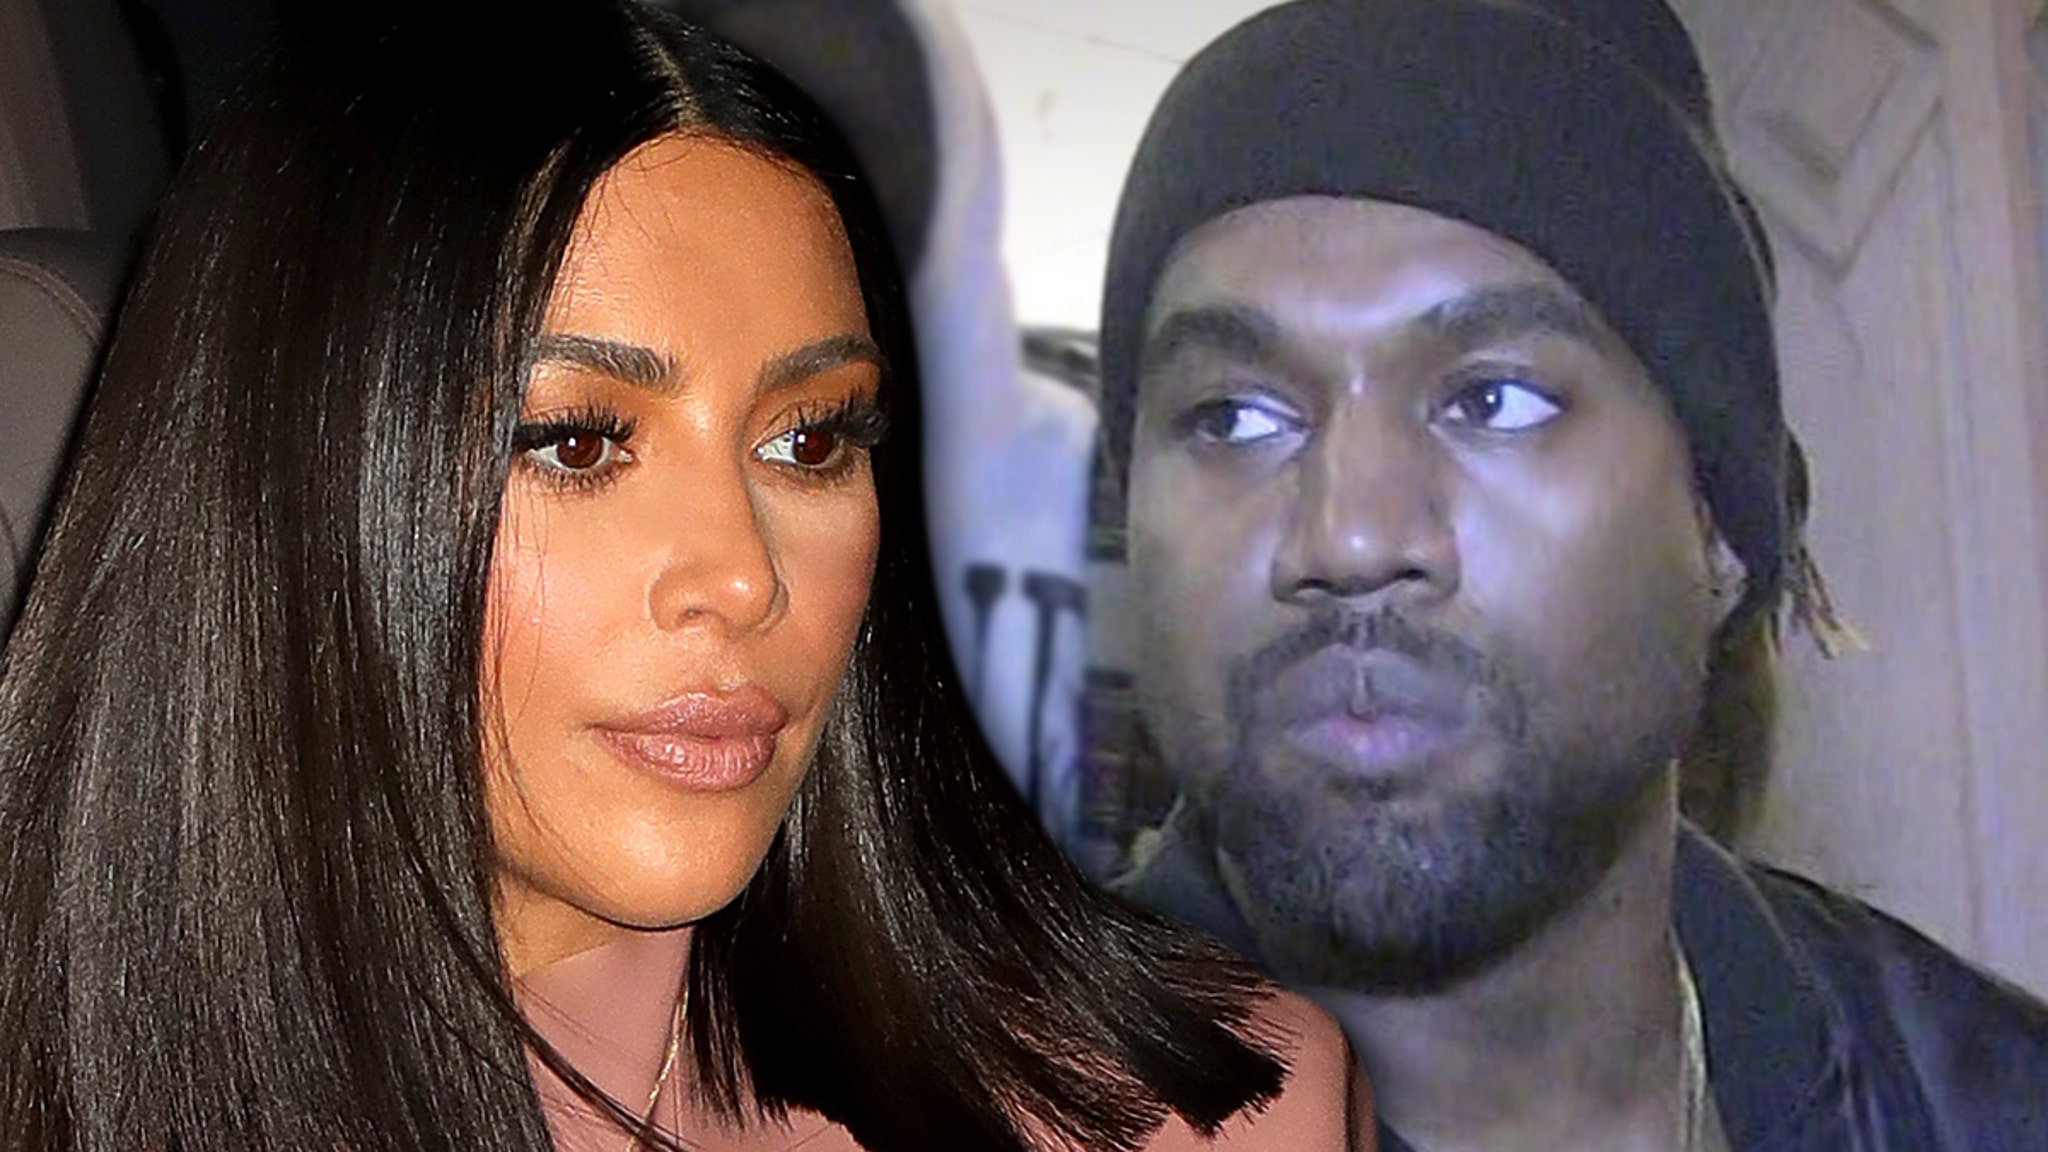 Kim Kardashian and Kanye West in Tropical Island Fortress to Avoid Paparazzi